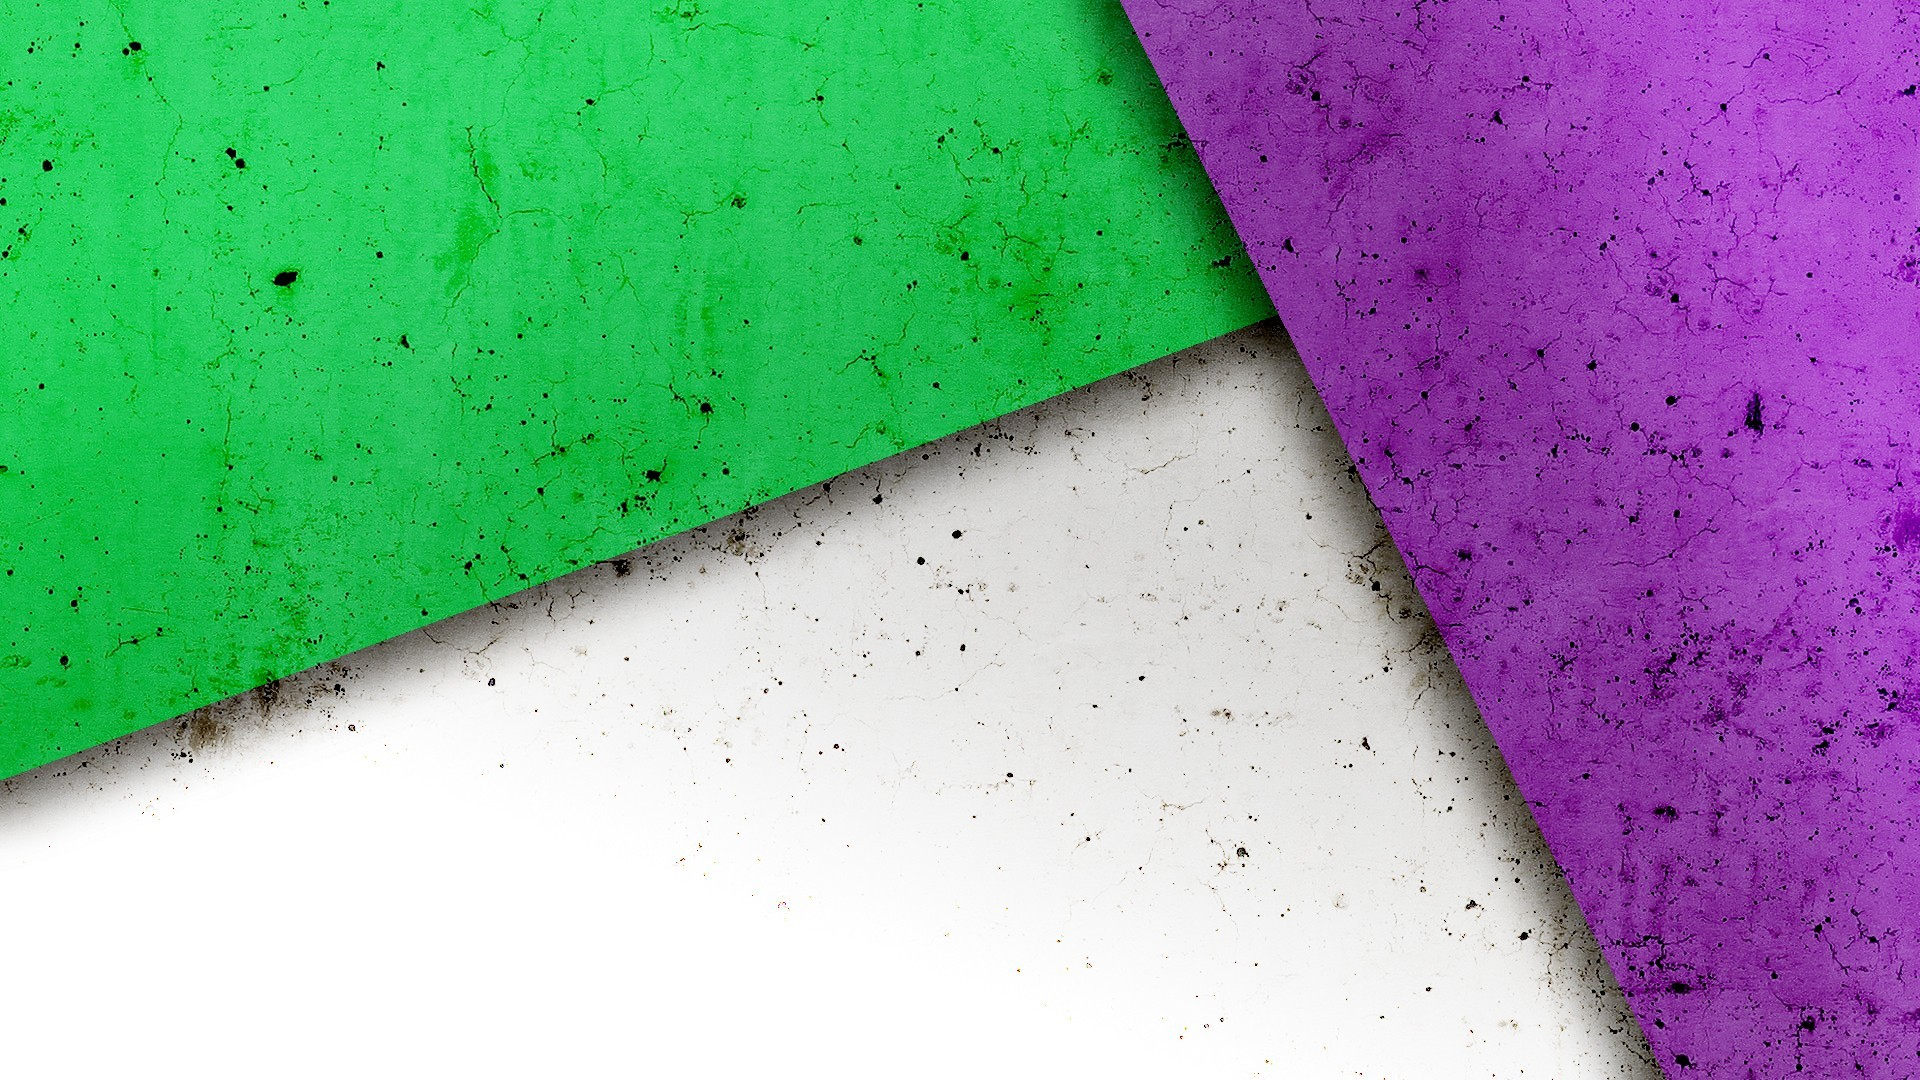 Wallpaper Green And Purple